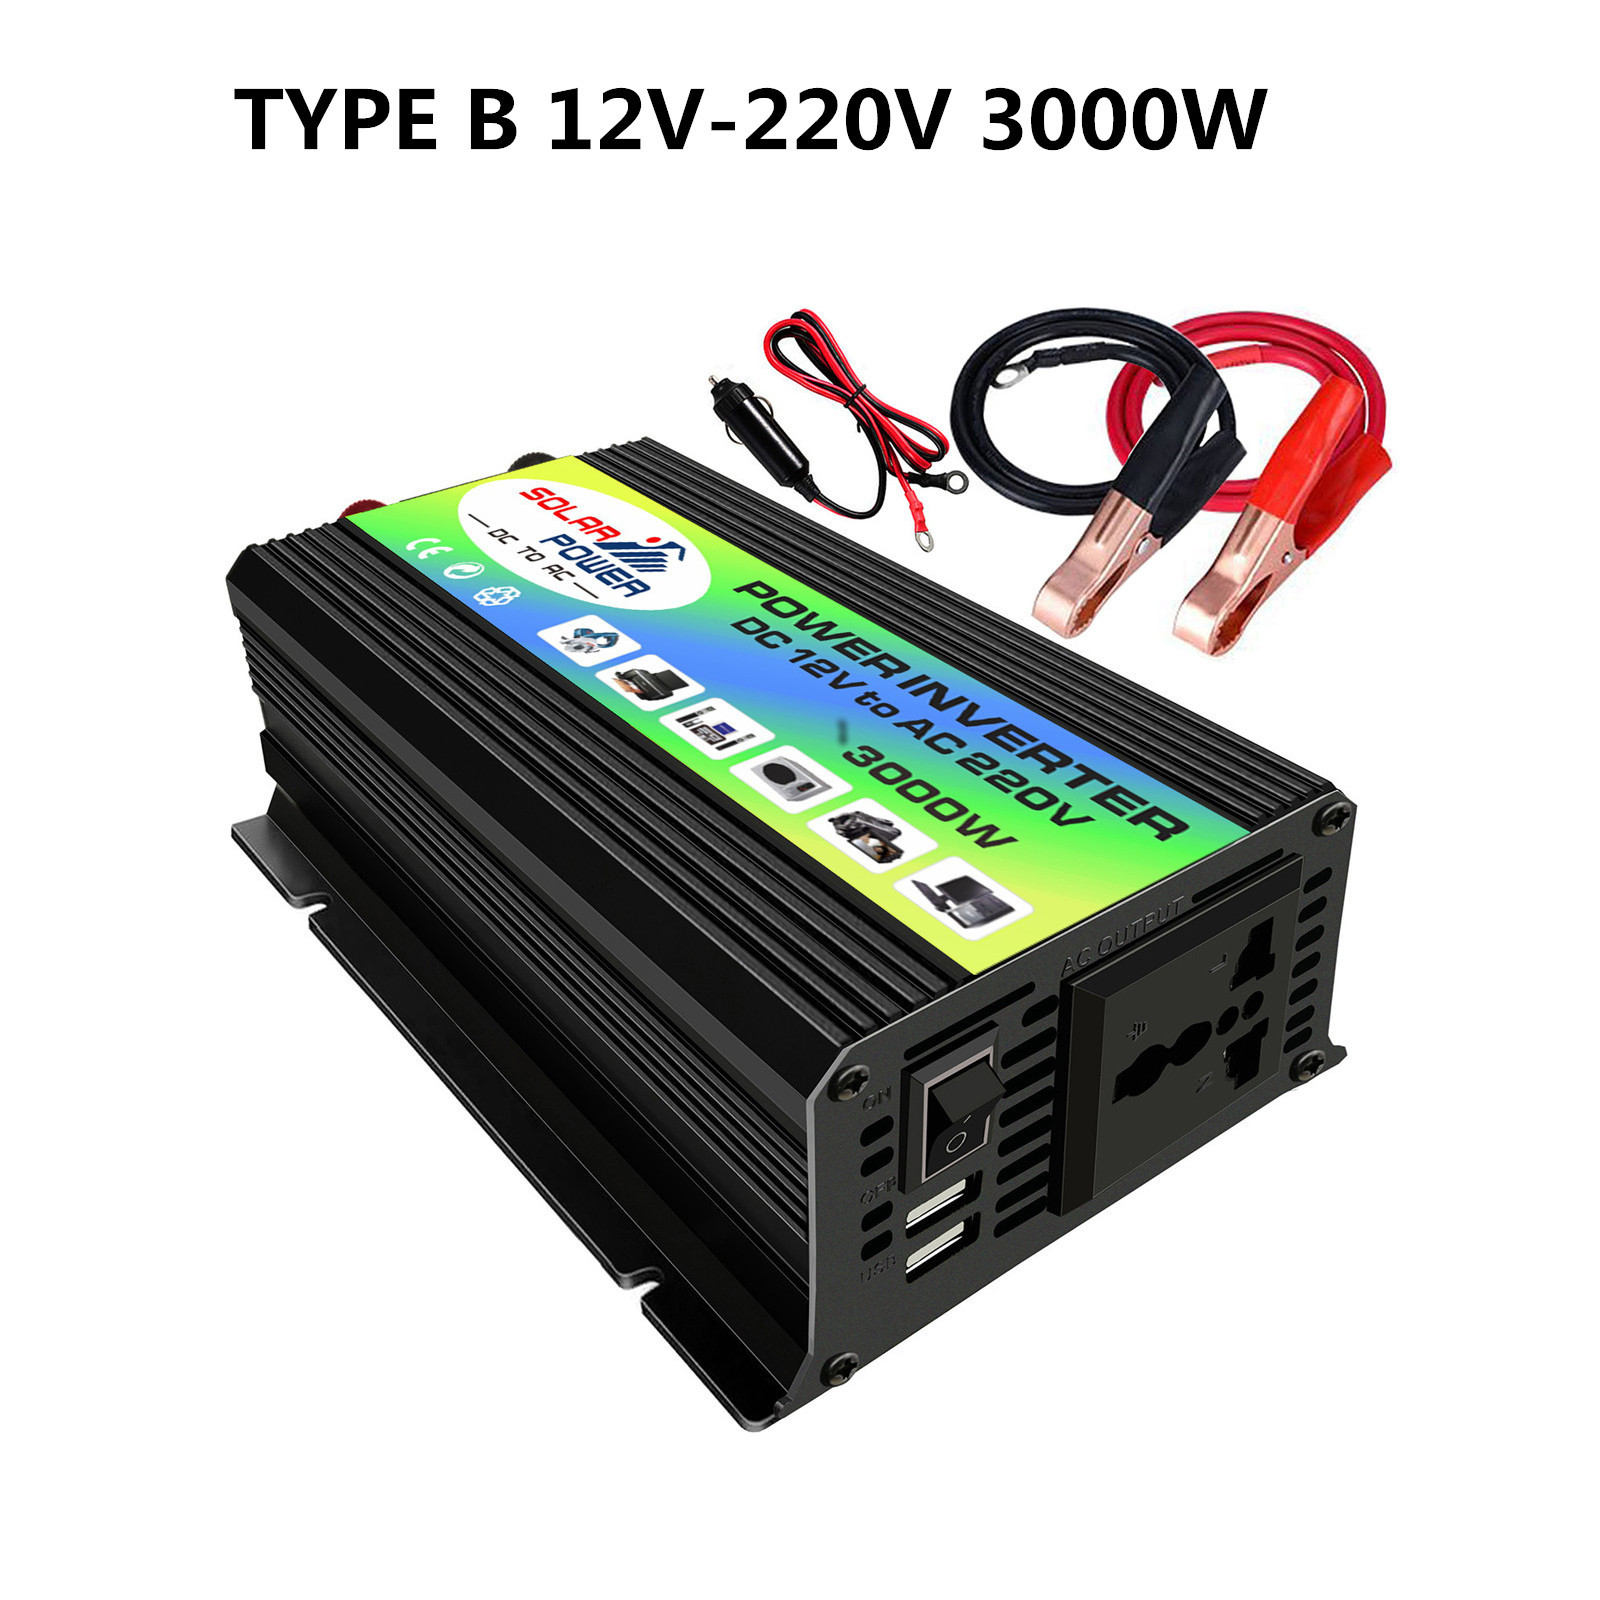 Solar Inverter 3000W Peak <font><b>Voltage</b></font> Transformer <font><b>Converter</b></font> <font><b>DC</b></font> 12V To AC 220V Car Inverter For Solar Inverter Home Appliances image